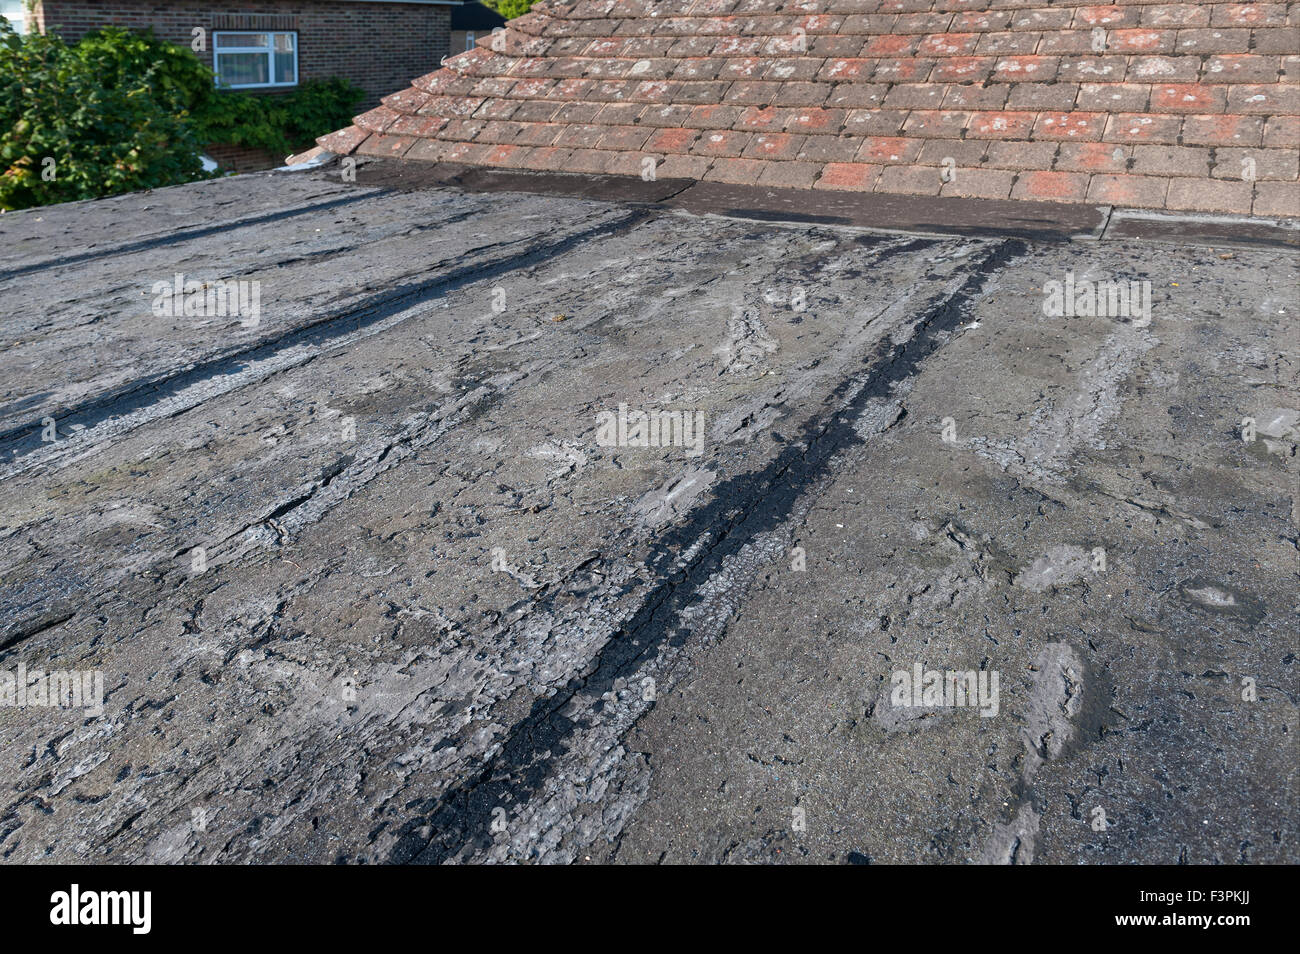 Failing And Deteriorating Flat Roof Cracked Up Opening